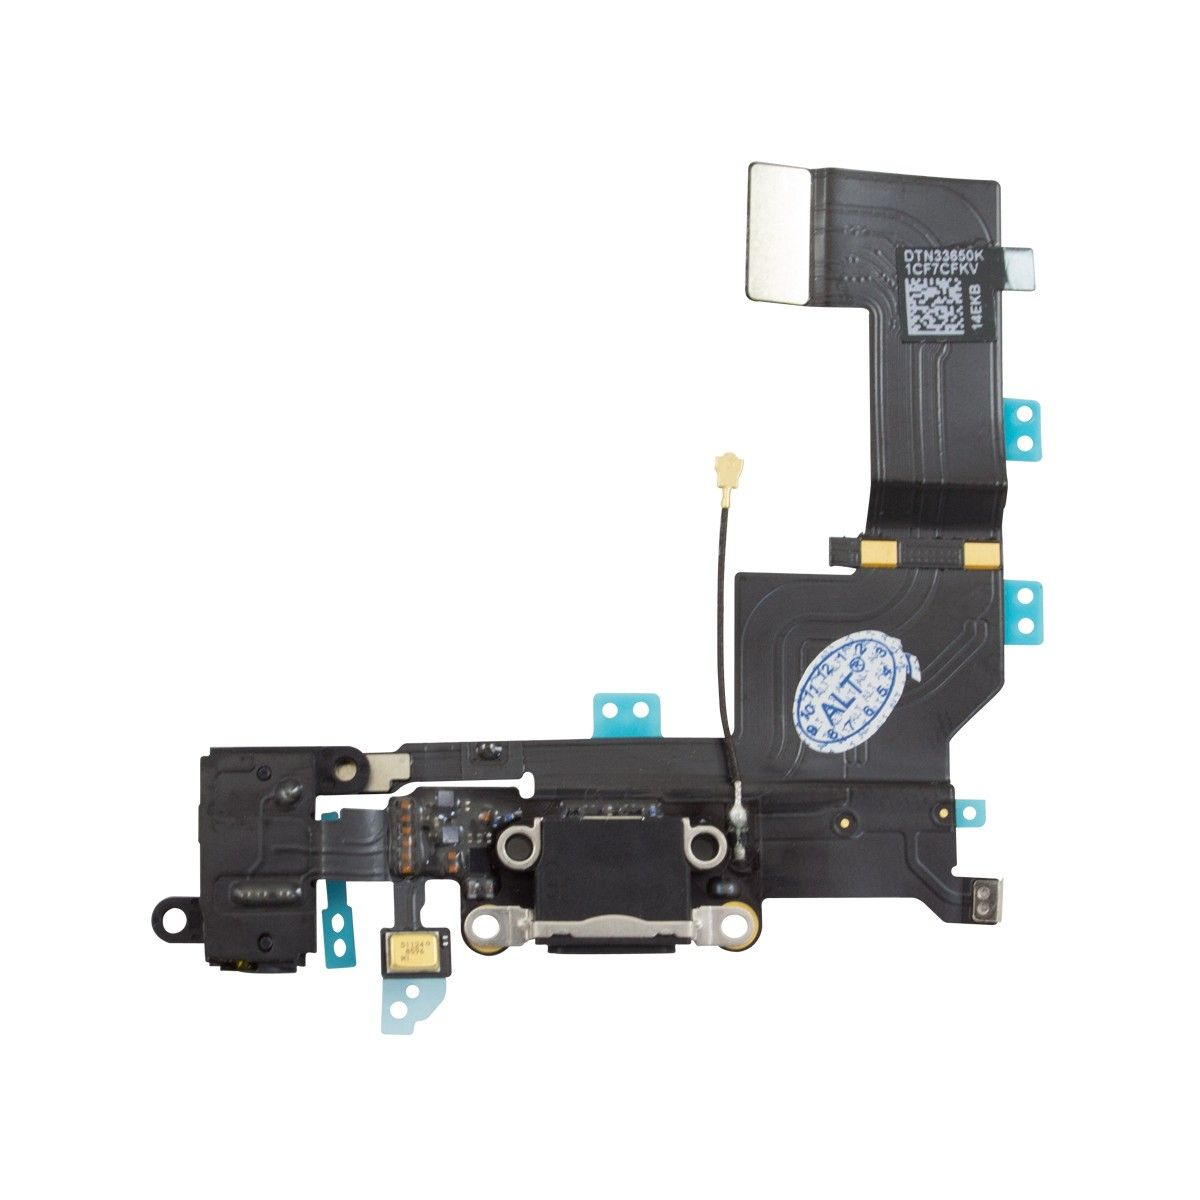 Cabo Flex Conector Dock Carga Audio Antena iPhone 5C Original